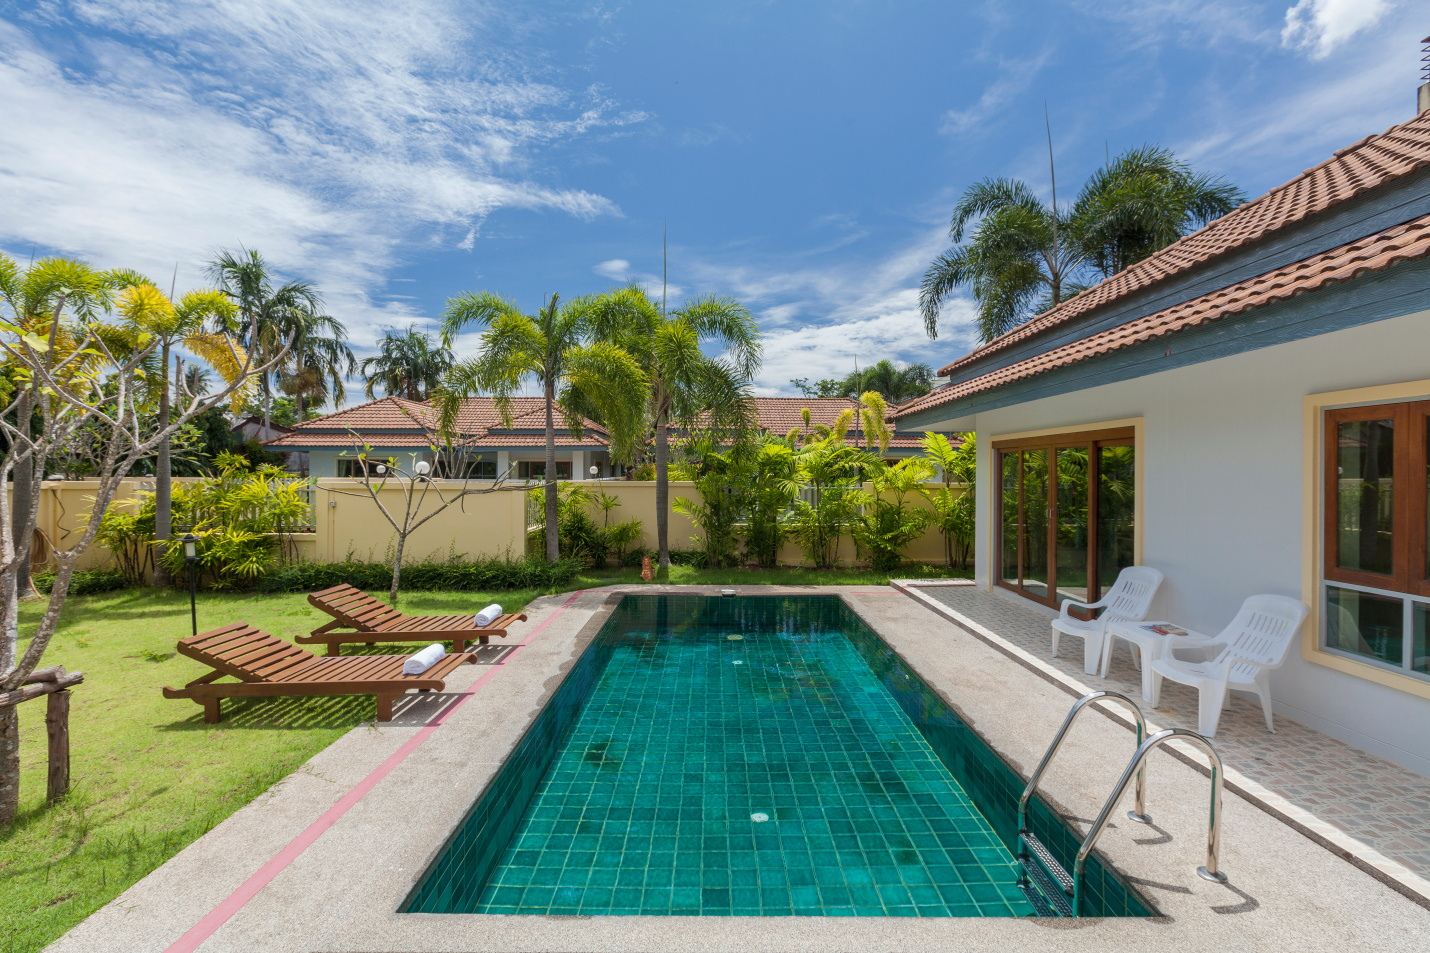 3 bedroom villa phuket